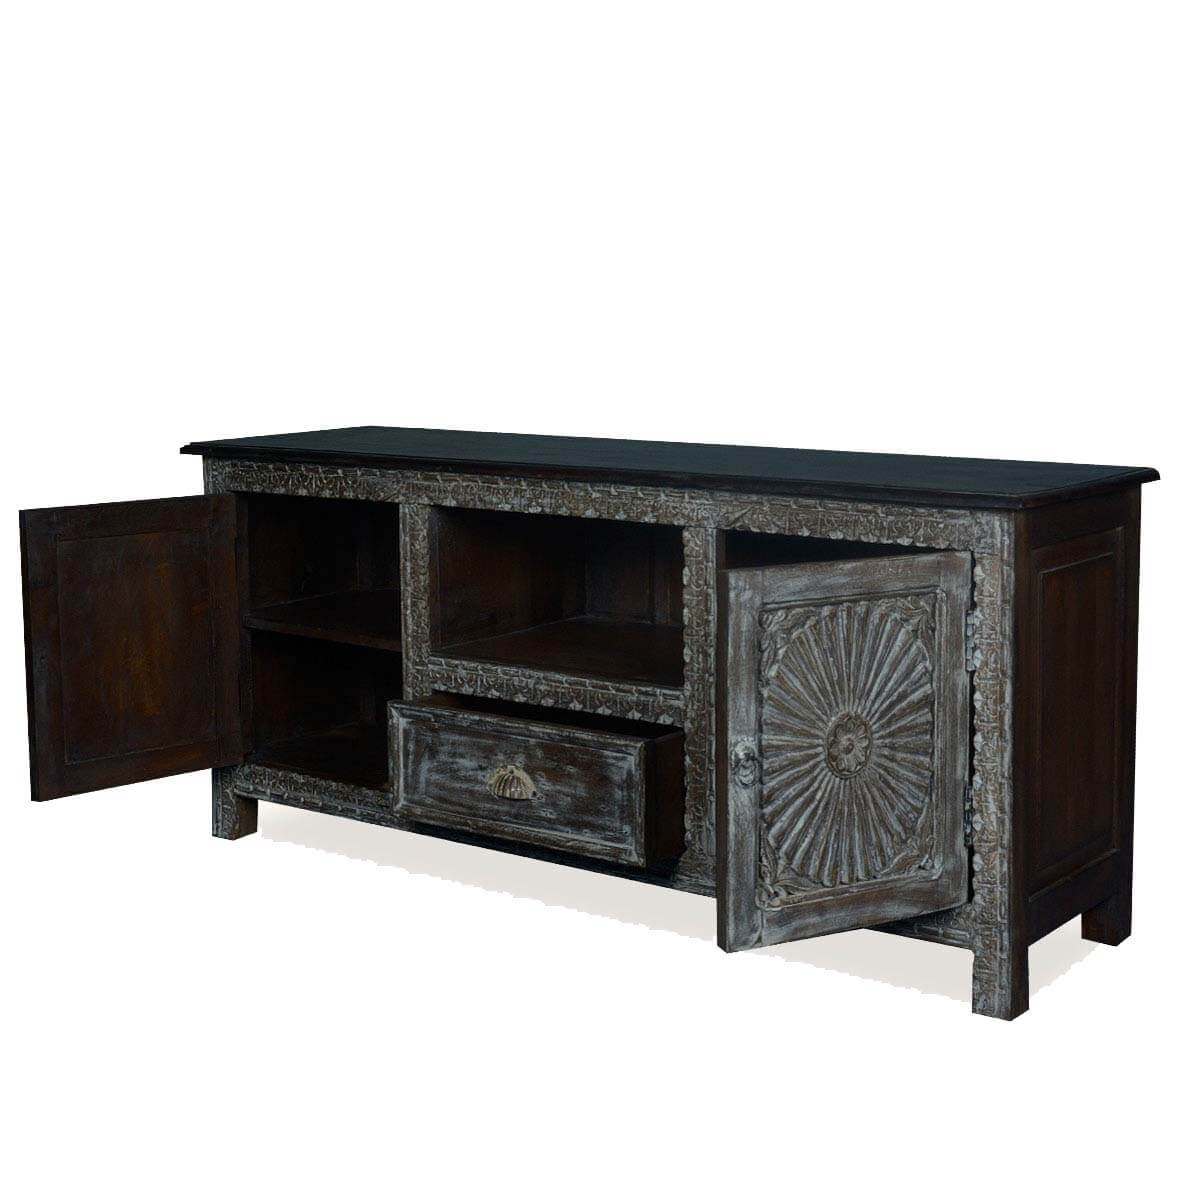 Ebony sunburst reclaimed wood 1 drawer tv stand media for Barnwood media cabinet